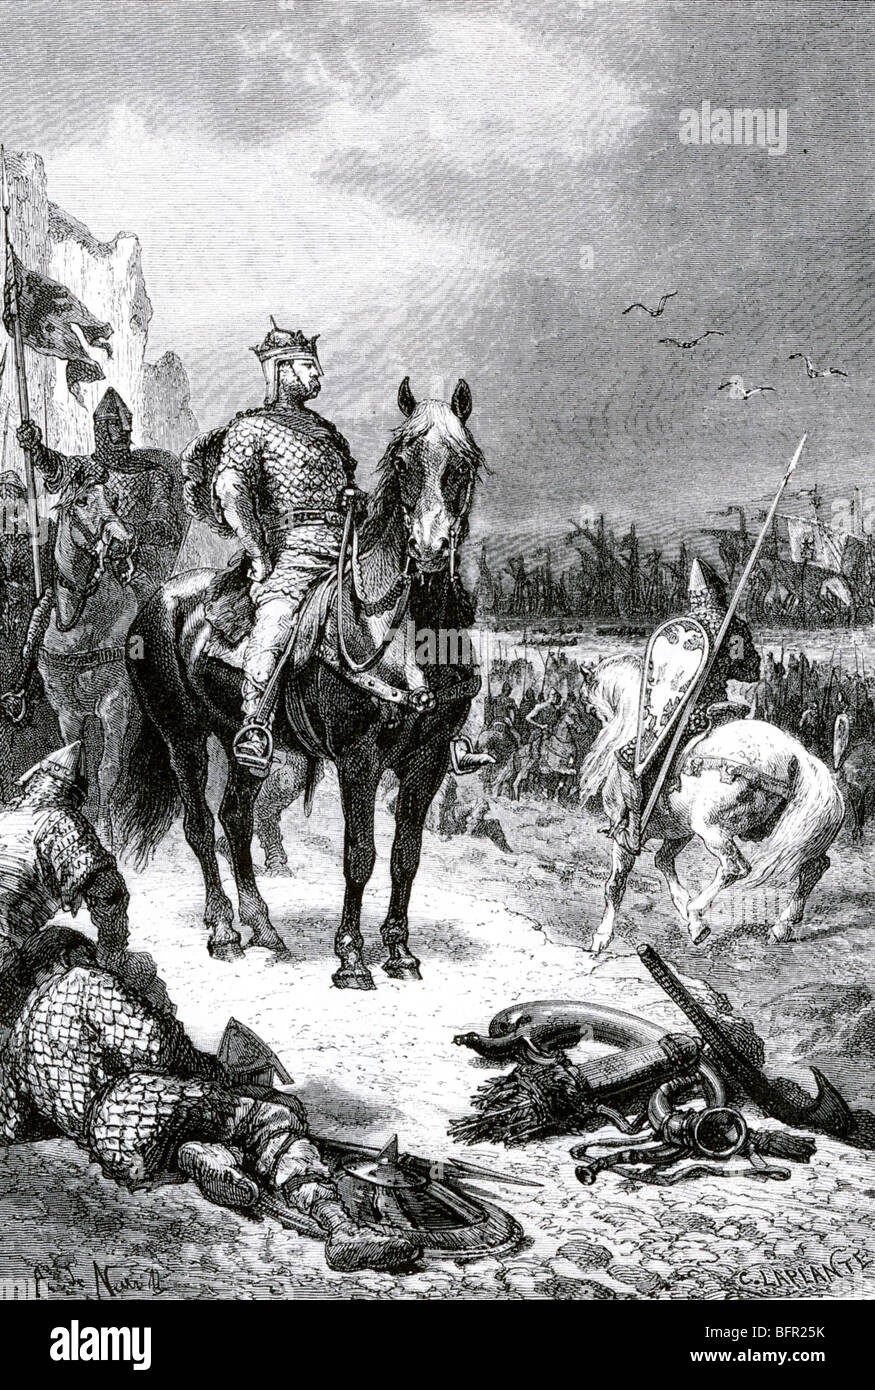 WILLIAM THE CONQUEROR surveys his troops after their landing on the English coast in 1066 in this Victorian engraving - Stock Image